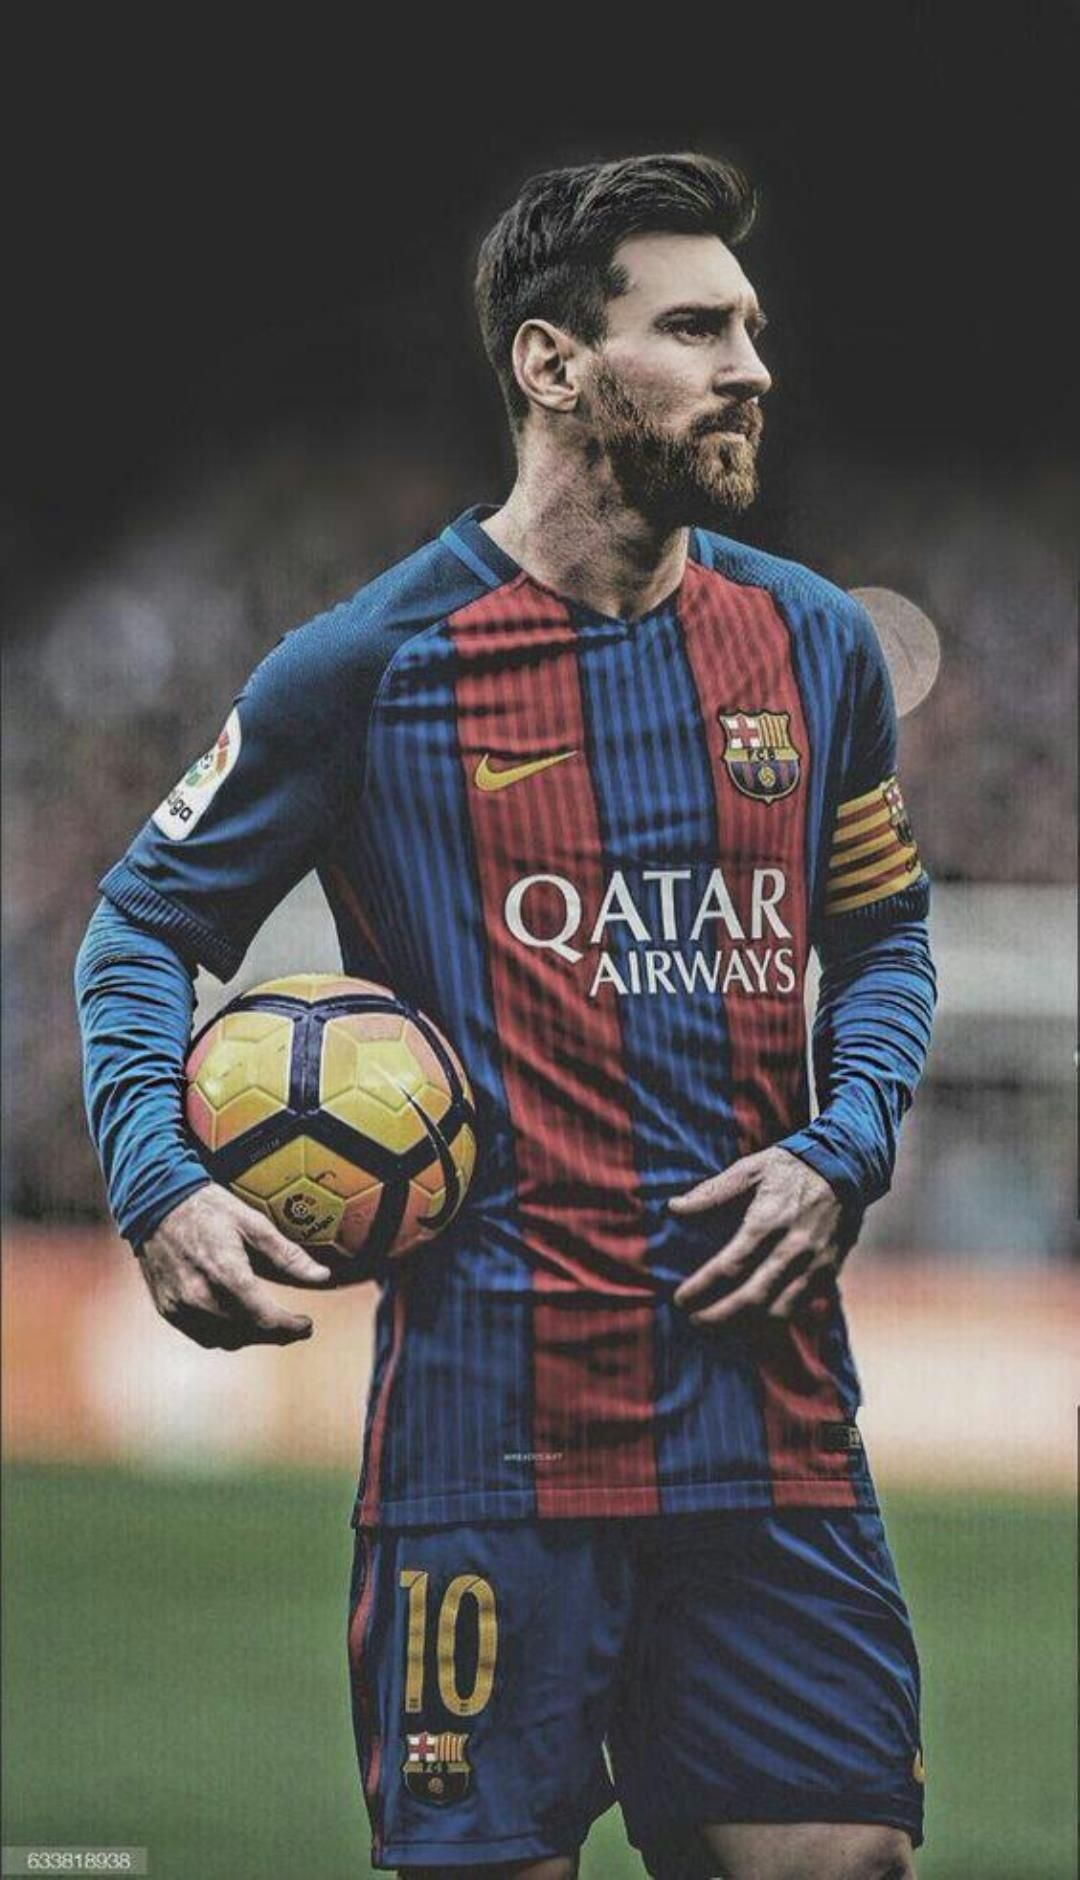 THE BEST 61 LIONEL MESSI WALLPAPER PHOTOS HD 2020 Messi soccer 1080x1880